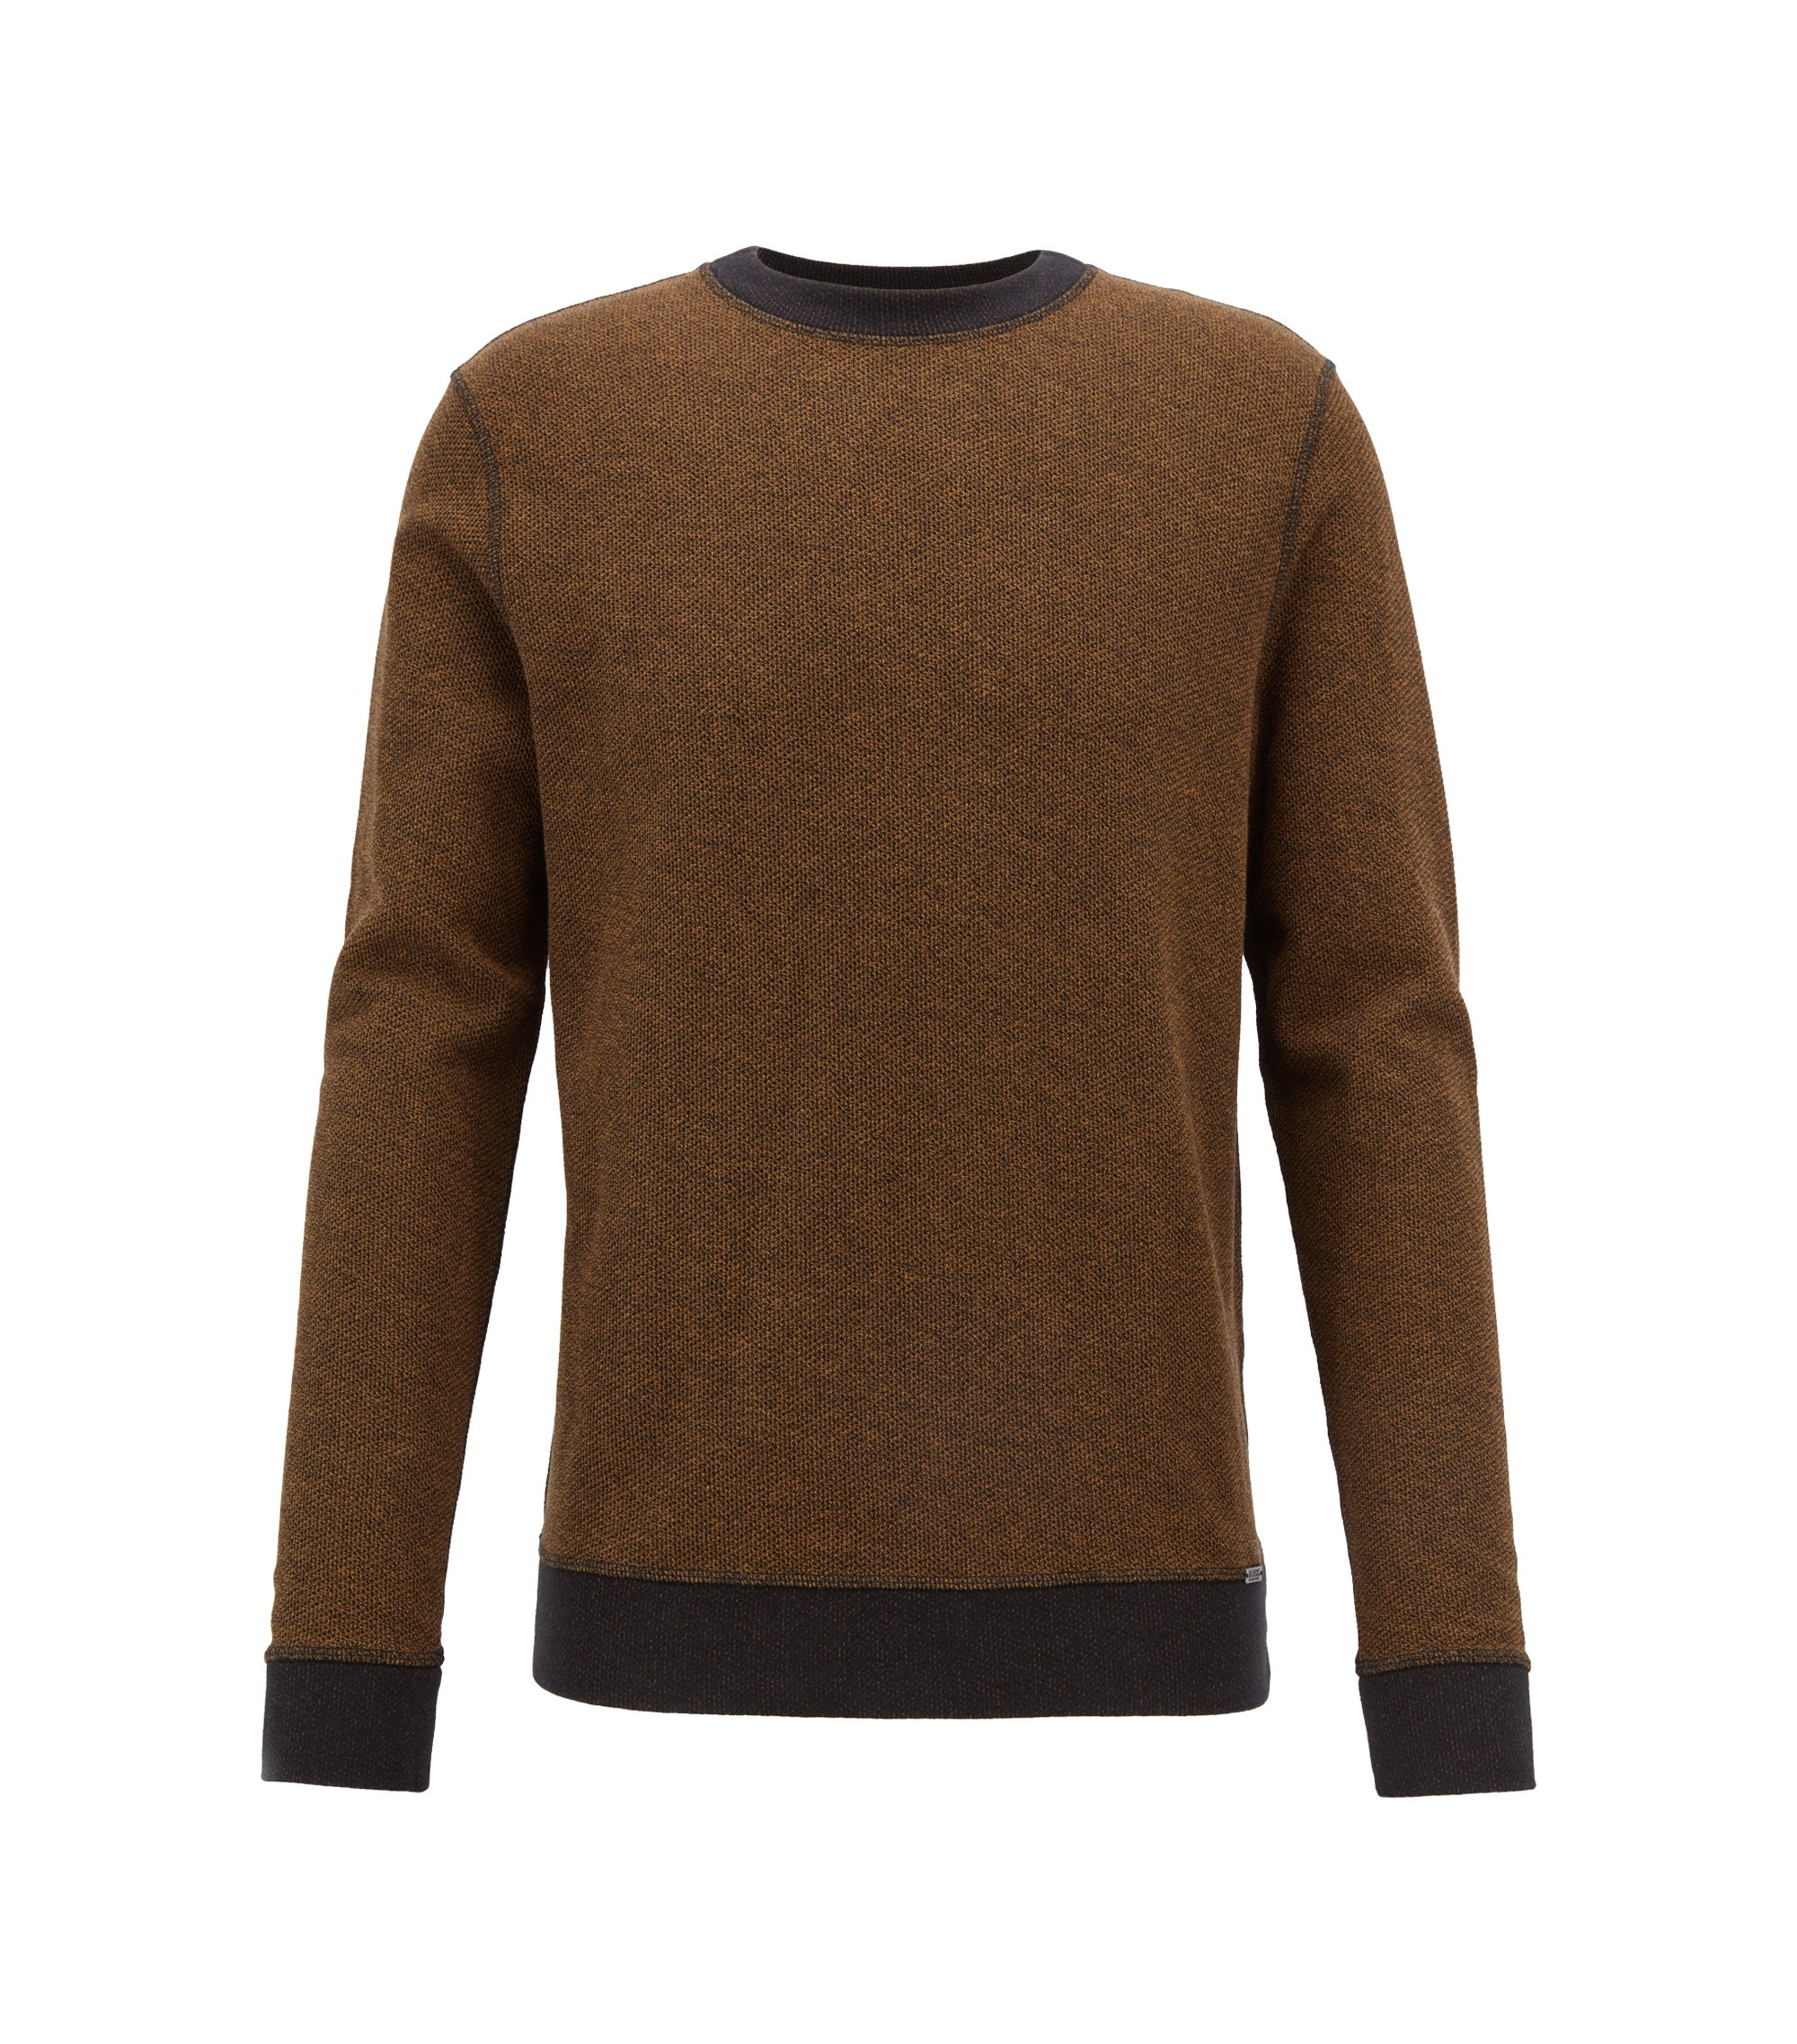 Reversible sweatshirt in mesh-structured cotton with contrast detailing, Brown